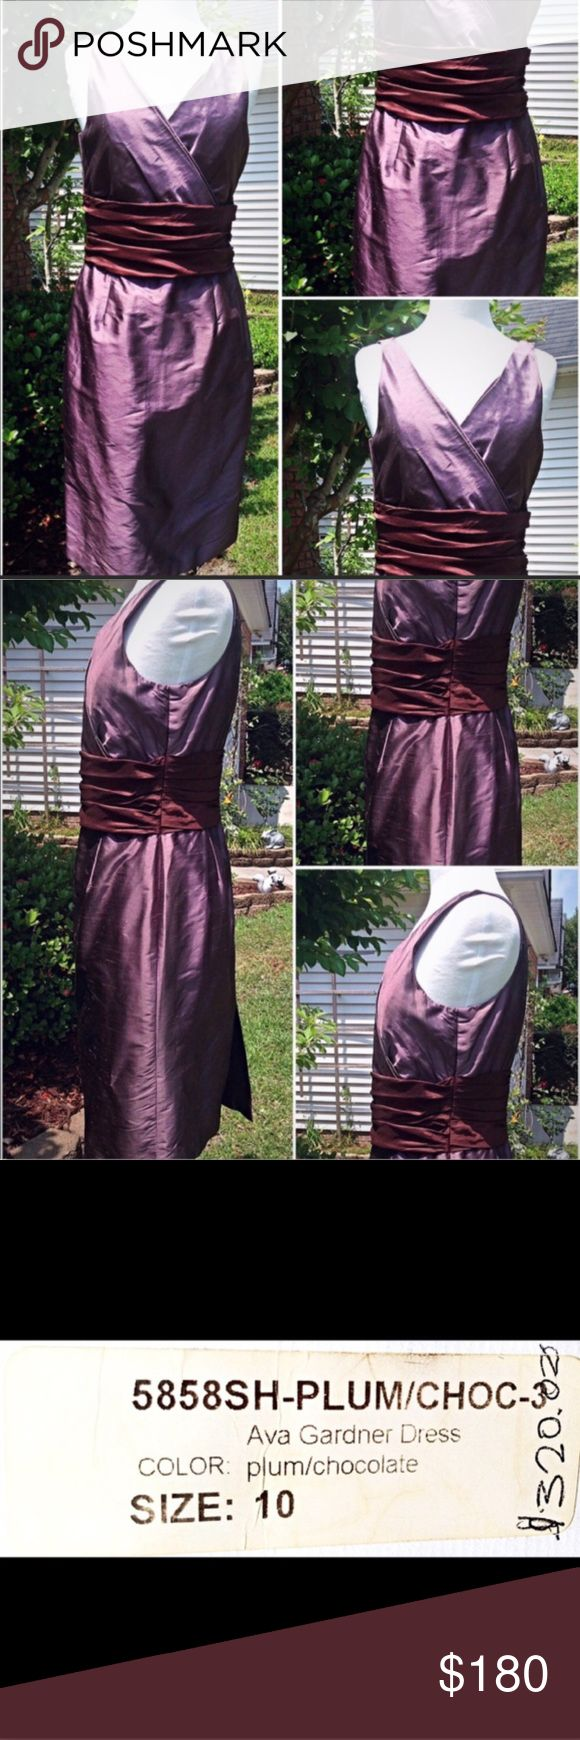 """NWT Siri Ava Gardner Plum & Chocolate Silk Dress Gorgeous Classic Design! Siri Brand Based Out Of San Francisco, CA. NWT Ava Gardner 100% Luxe Shantung Indian Silk Plum With Chocolate Ruched Wide Waist Band Sleeveless Special Occasion Dress. Stunning Color Combination, Extremely Figure Flattering For All Body Shapes (examples provided), V-Shape Neckline Front & Back, Back Slit, Exquisite Tailoring, Excellent Condition No Color Fade, No Stains Or Spots. Size 10 Bust 38""""/Rib Cage 32.5""""/Waist…"""